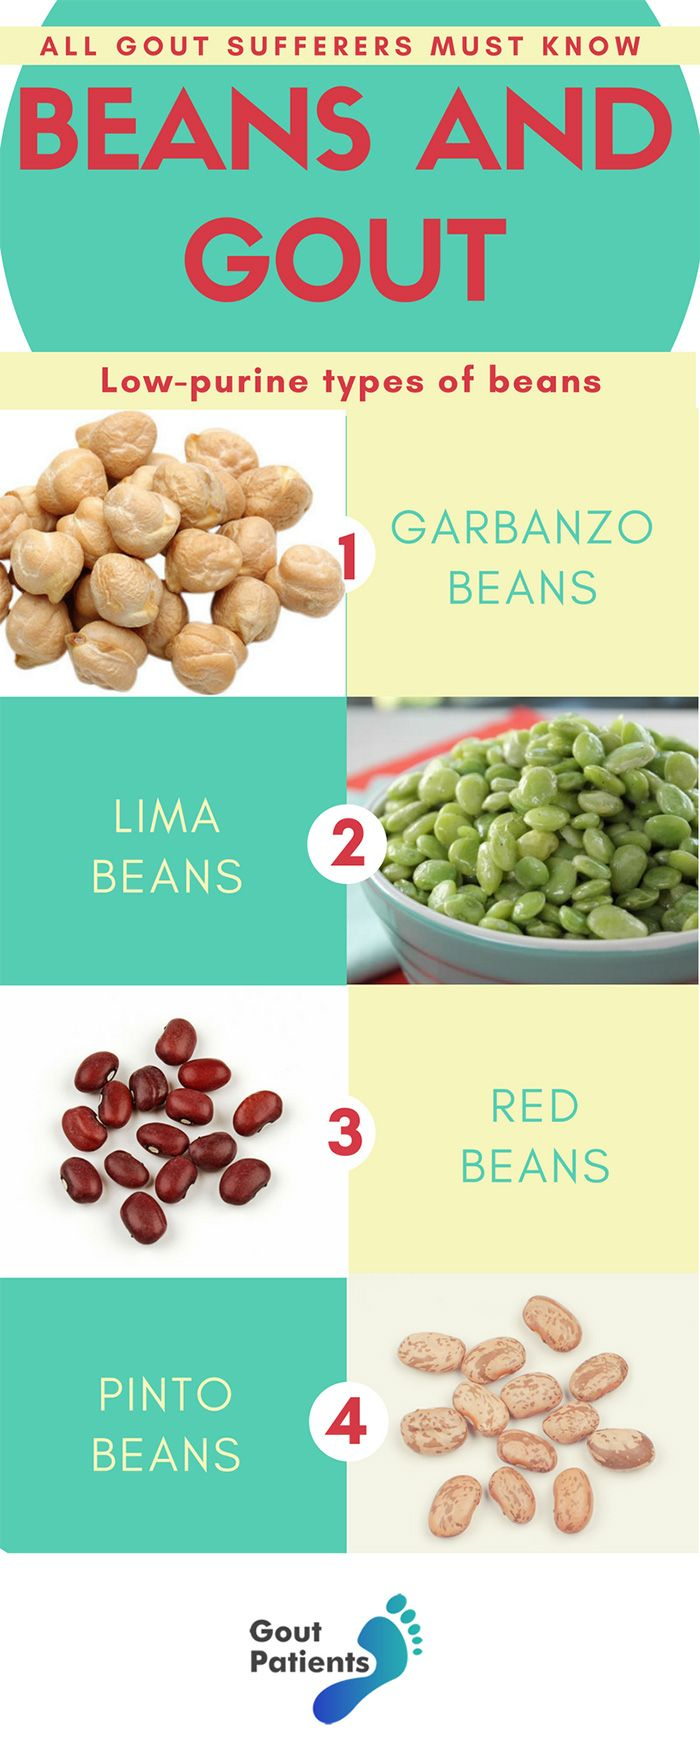 11 Types Of Beans For Gout Sufferers All You Need To Know Gout Recipes Gout Diet Recipes Gout Diet